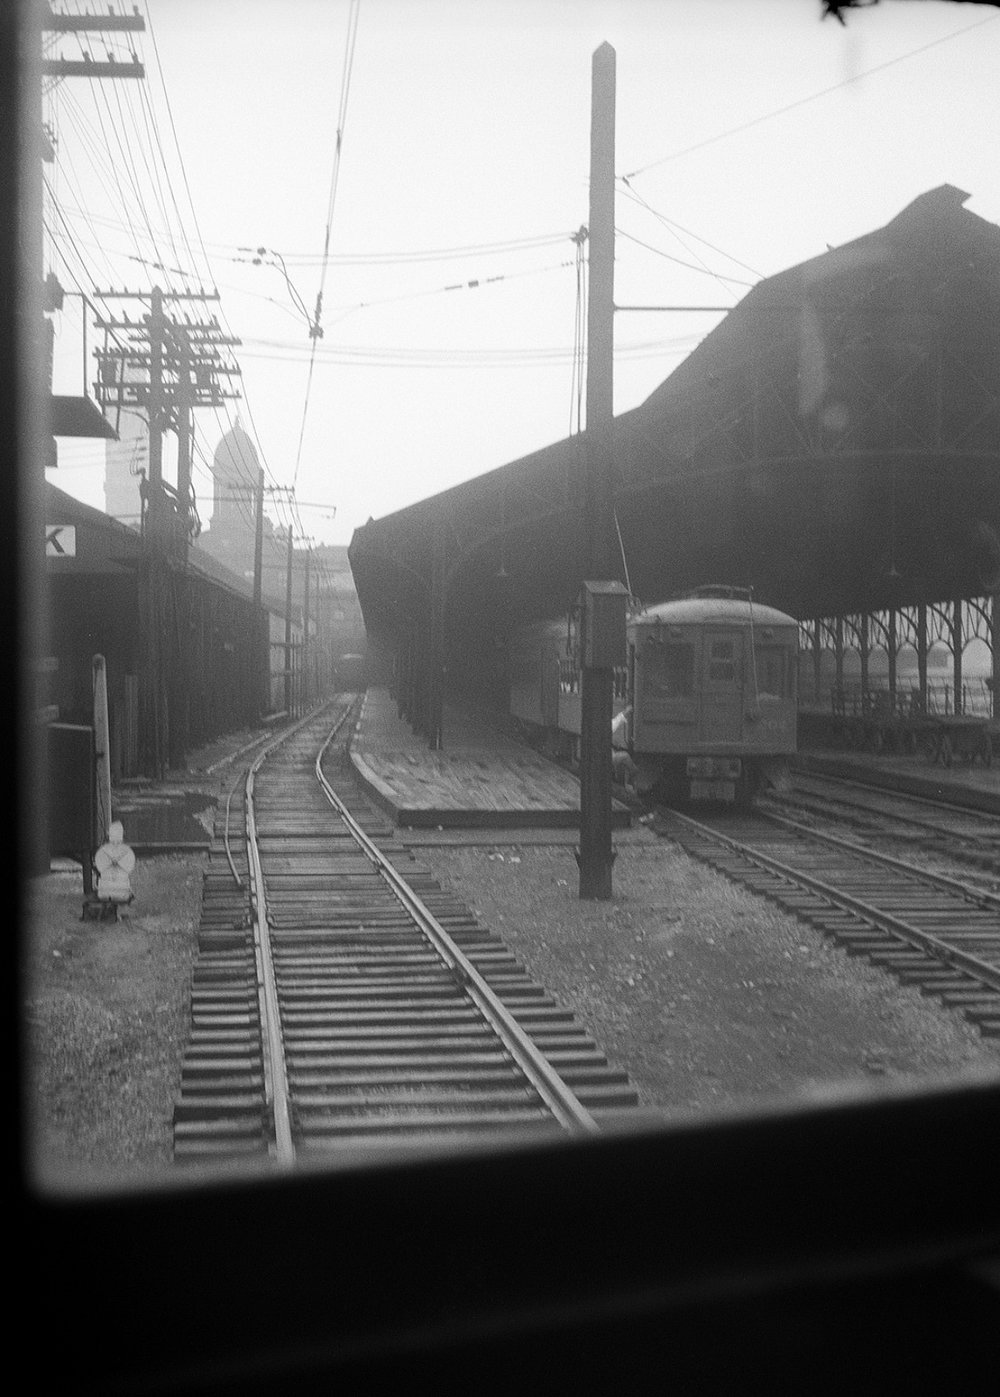 Baltimore & Annapolis Railroad Car at Camden Station. Baltimore, Maryland Date: 1940's. Source: Hugh Hayes Collection.